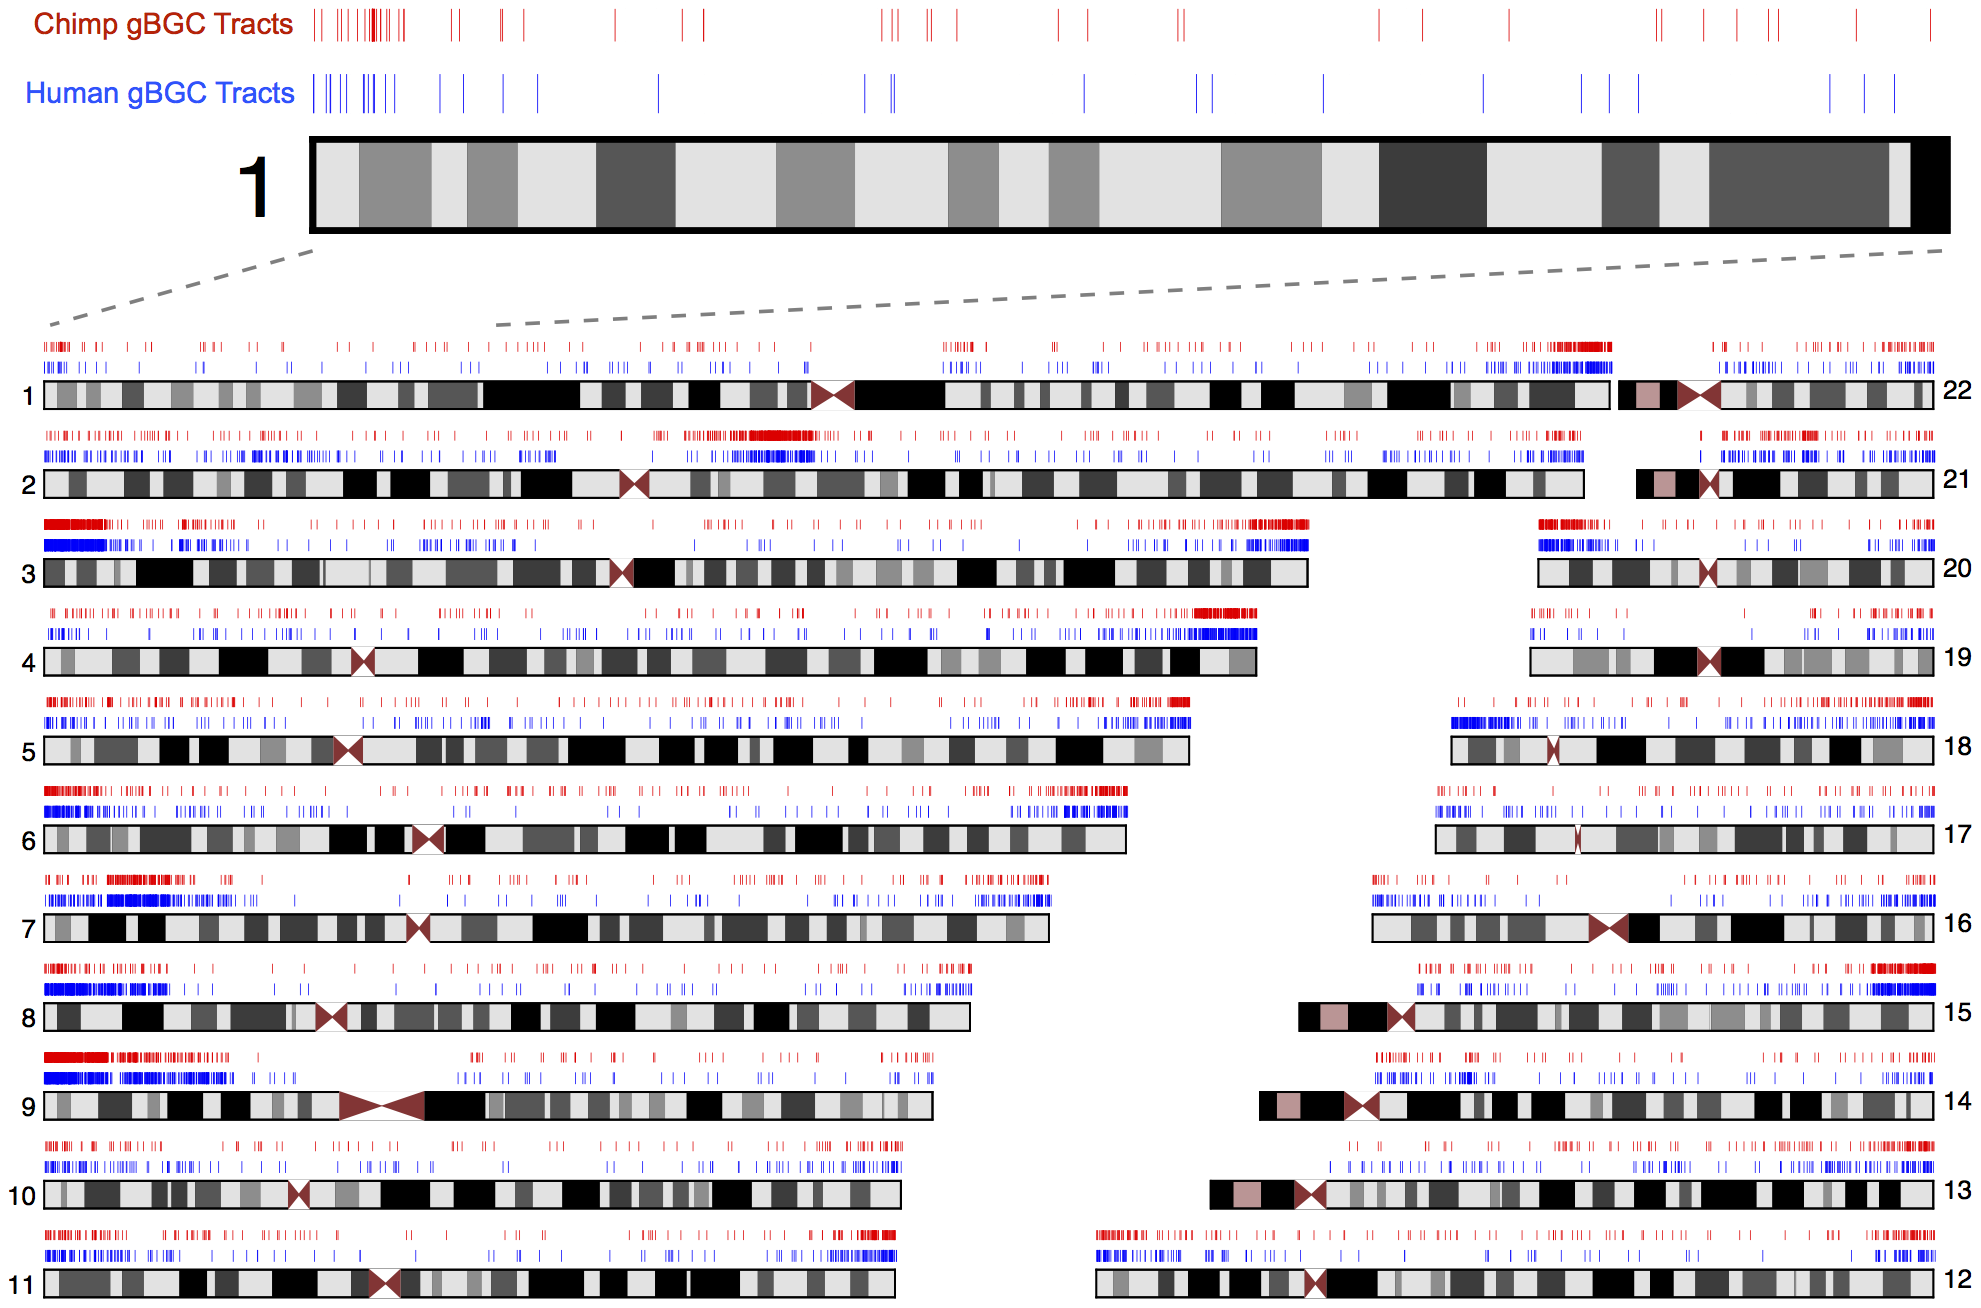 Genomic distribution of predicted human and chimpanzee gBGC tracts.